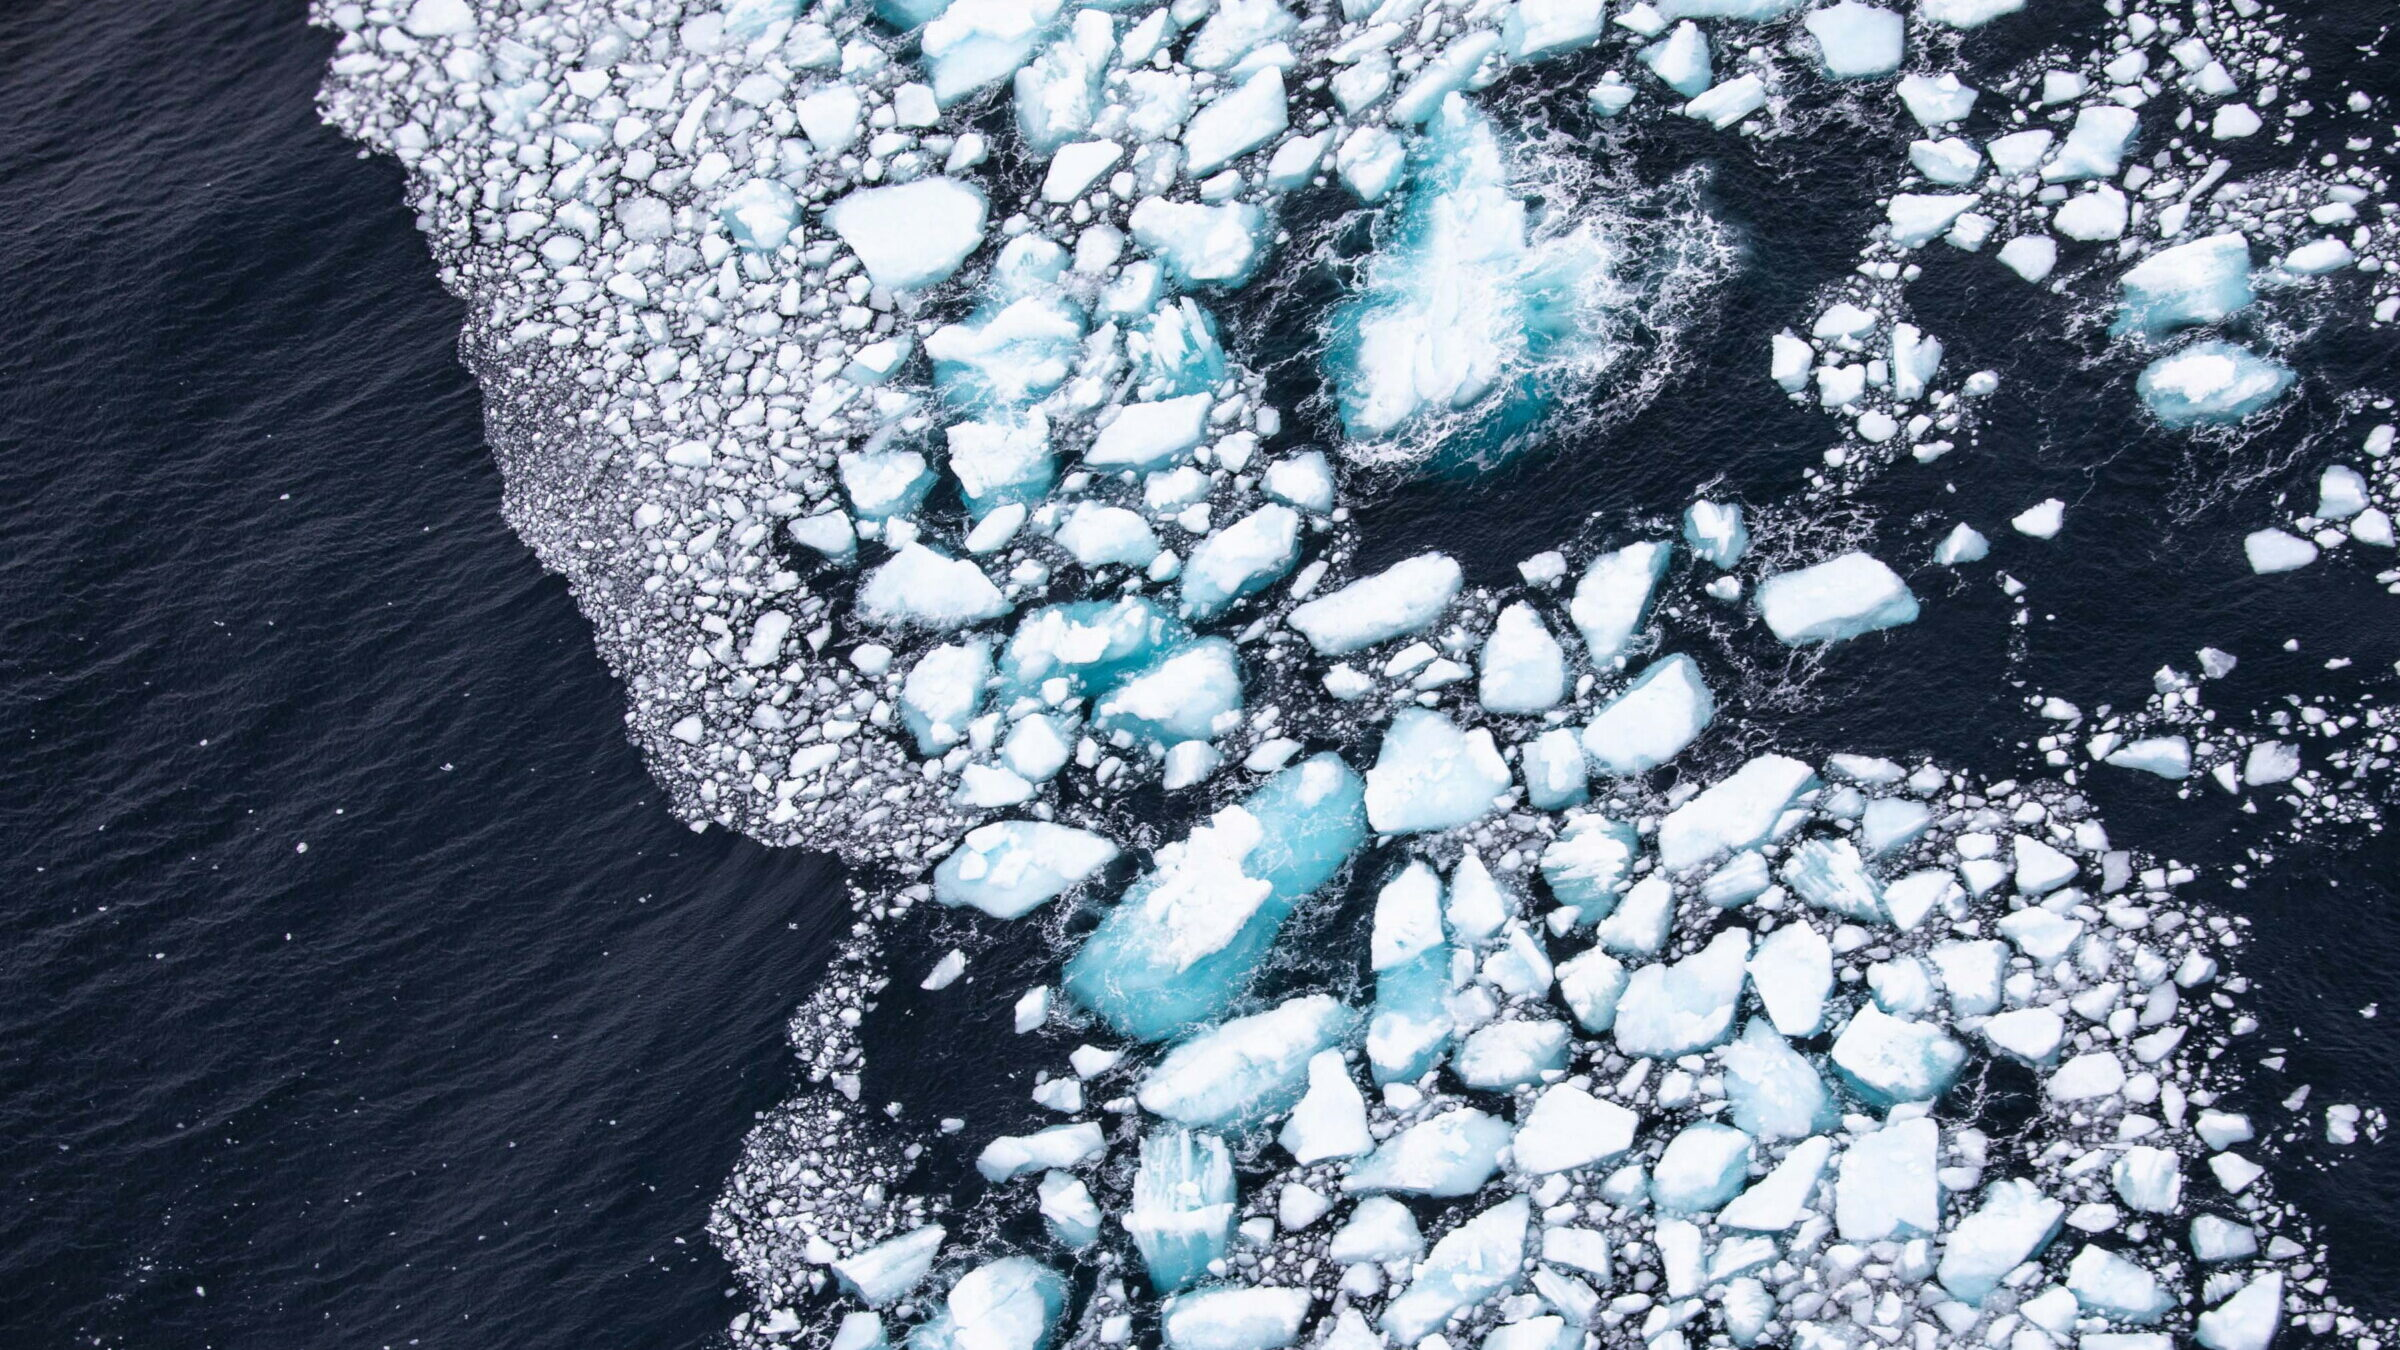 image of melting ice in the antarctica